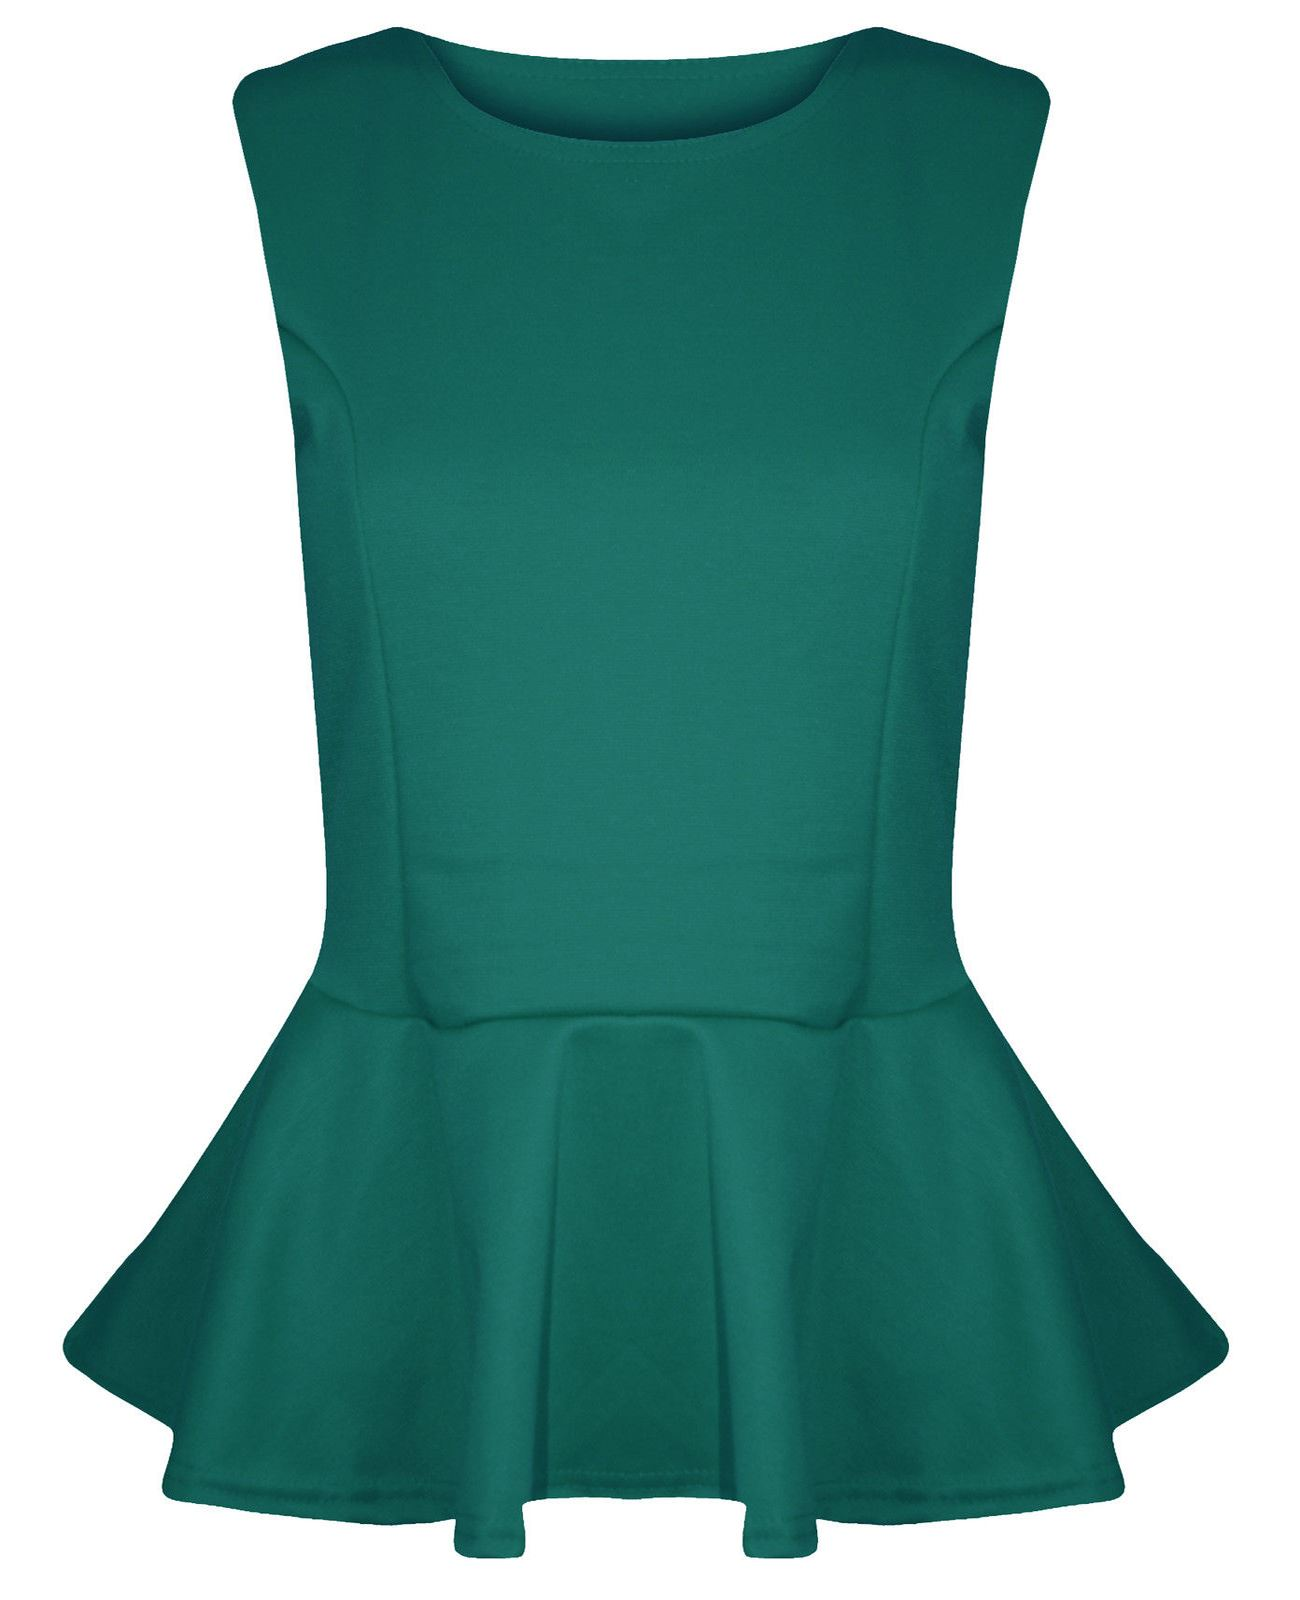 New-Ladies-Plus-Size-Peplum-Frill-Fitted-Sleeveless-Skater-Tops-16-26